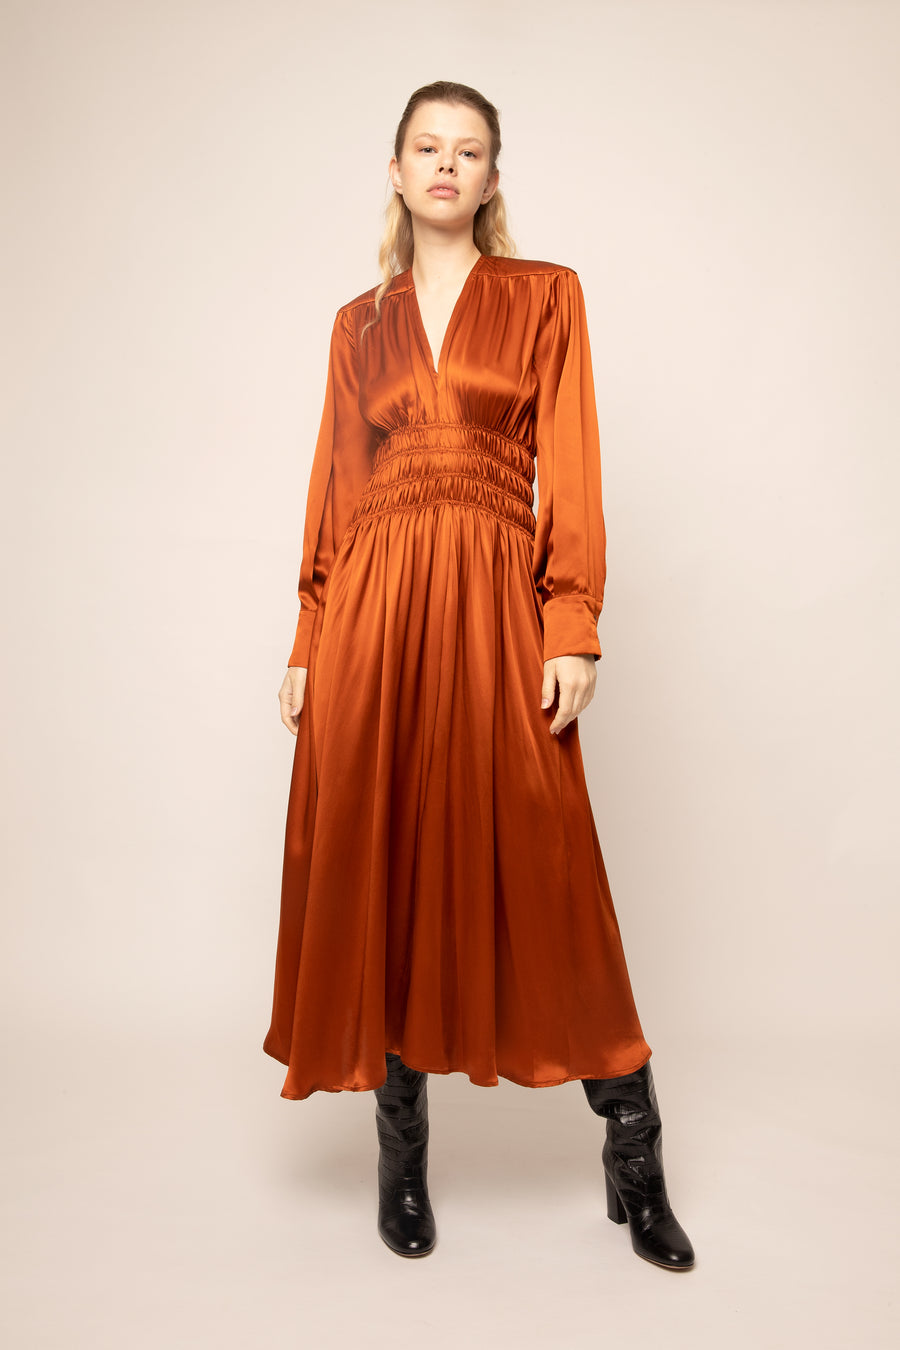 DIANA GATHERED DRESS BURNT ORANGE SILK SATIN